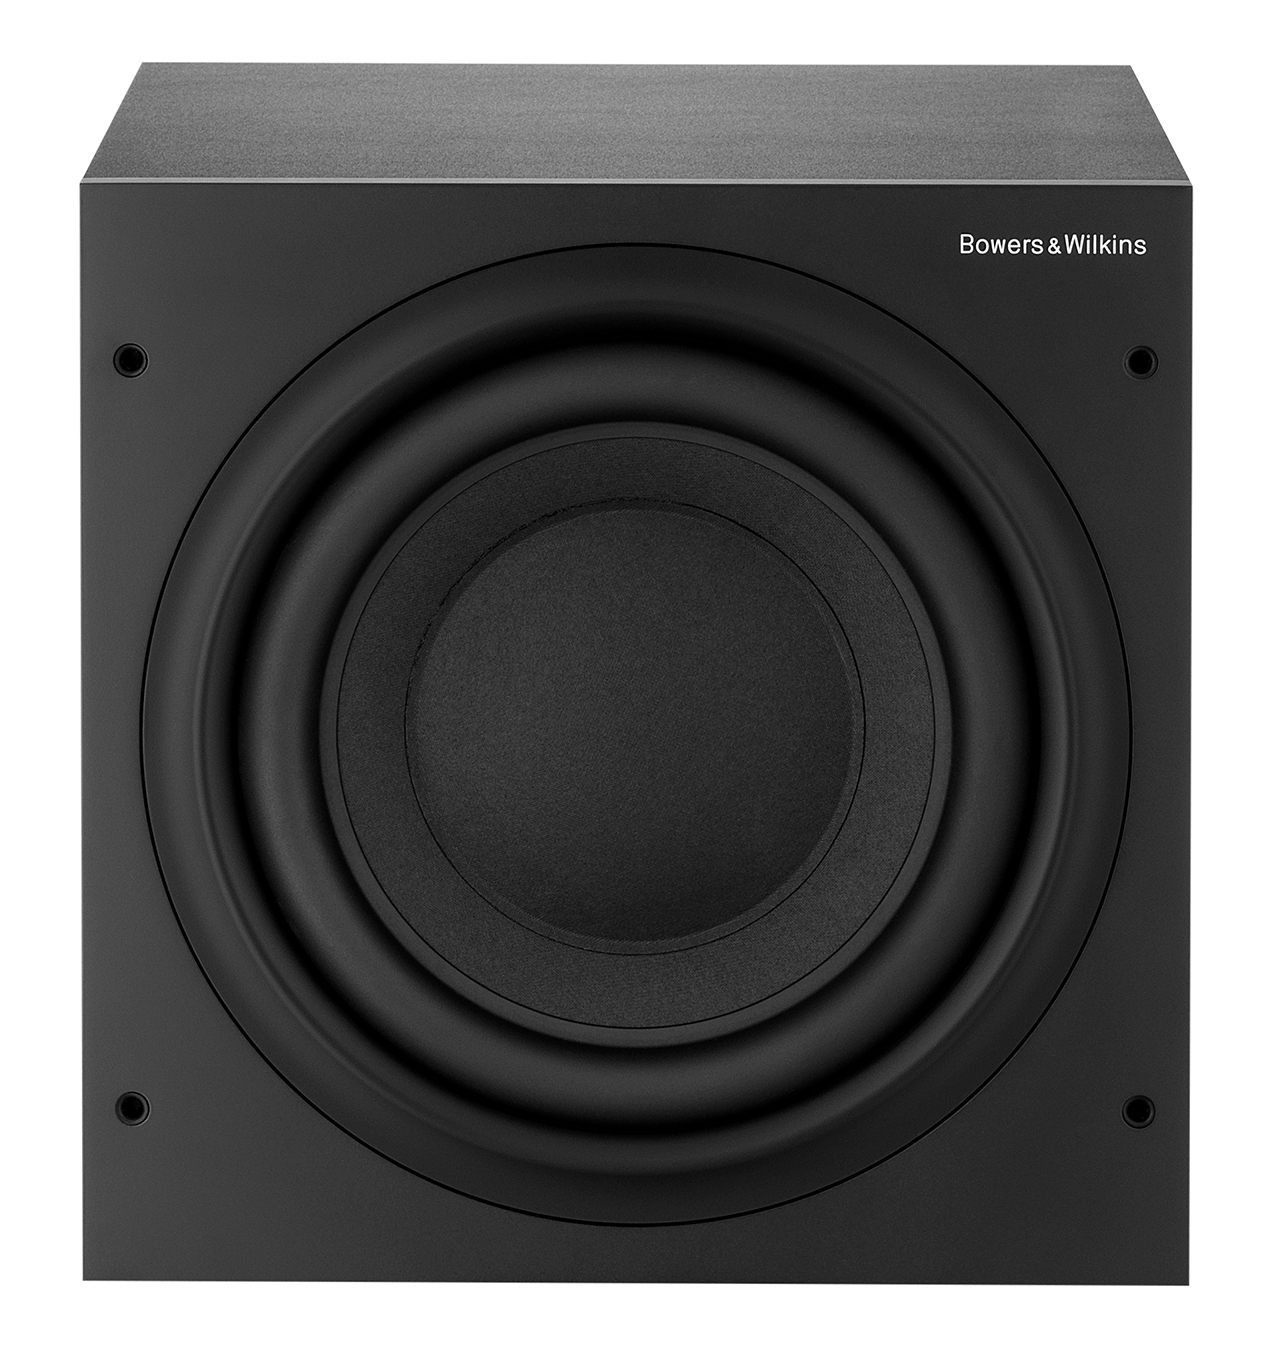 Bowers & Wilkins ASW608 (2018) black